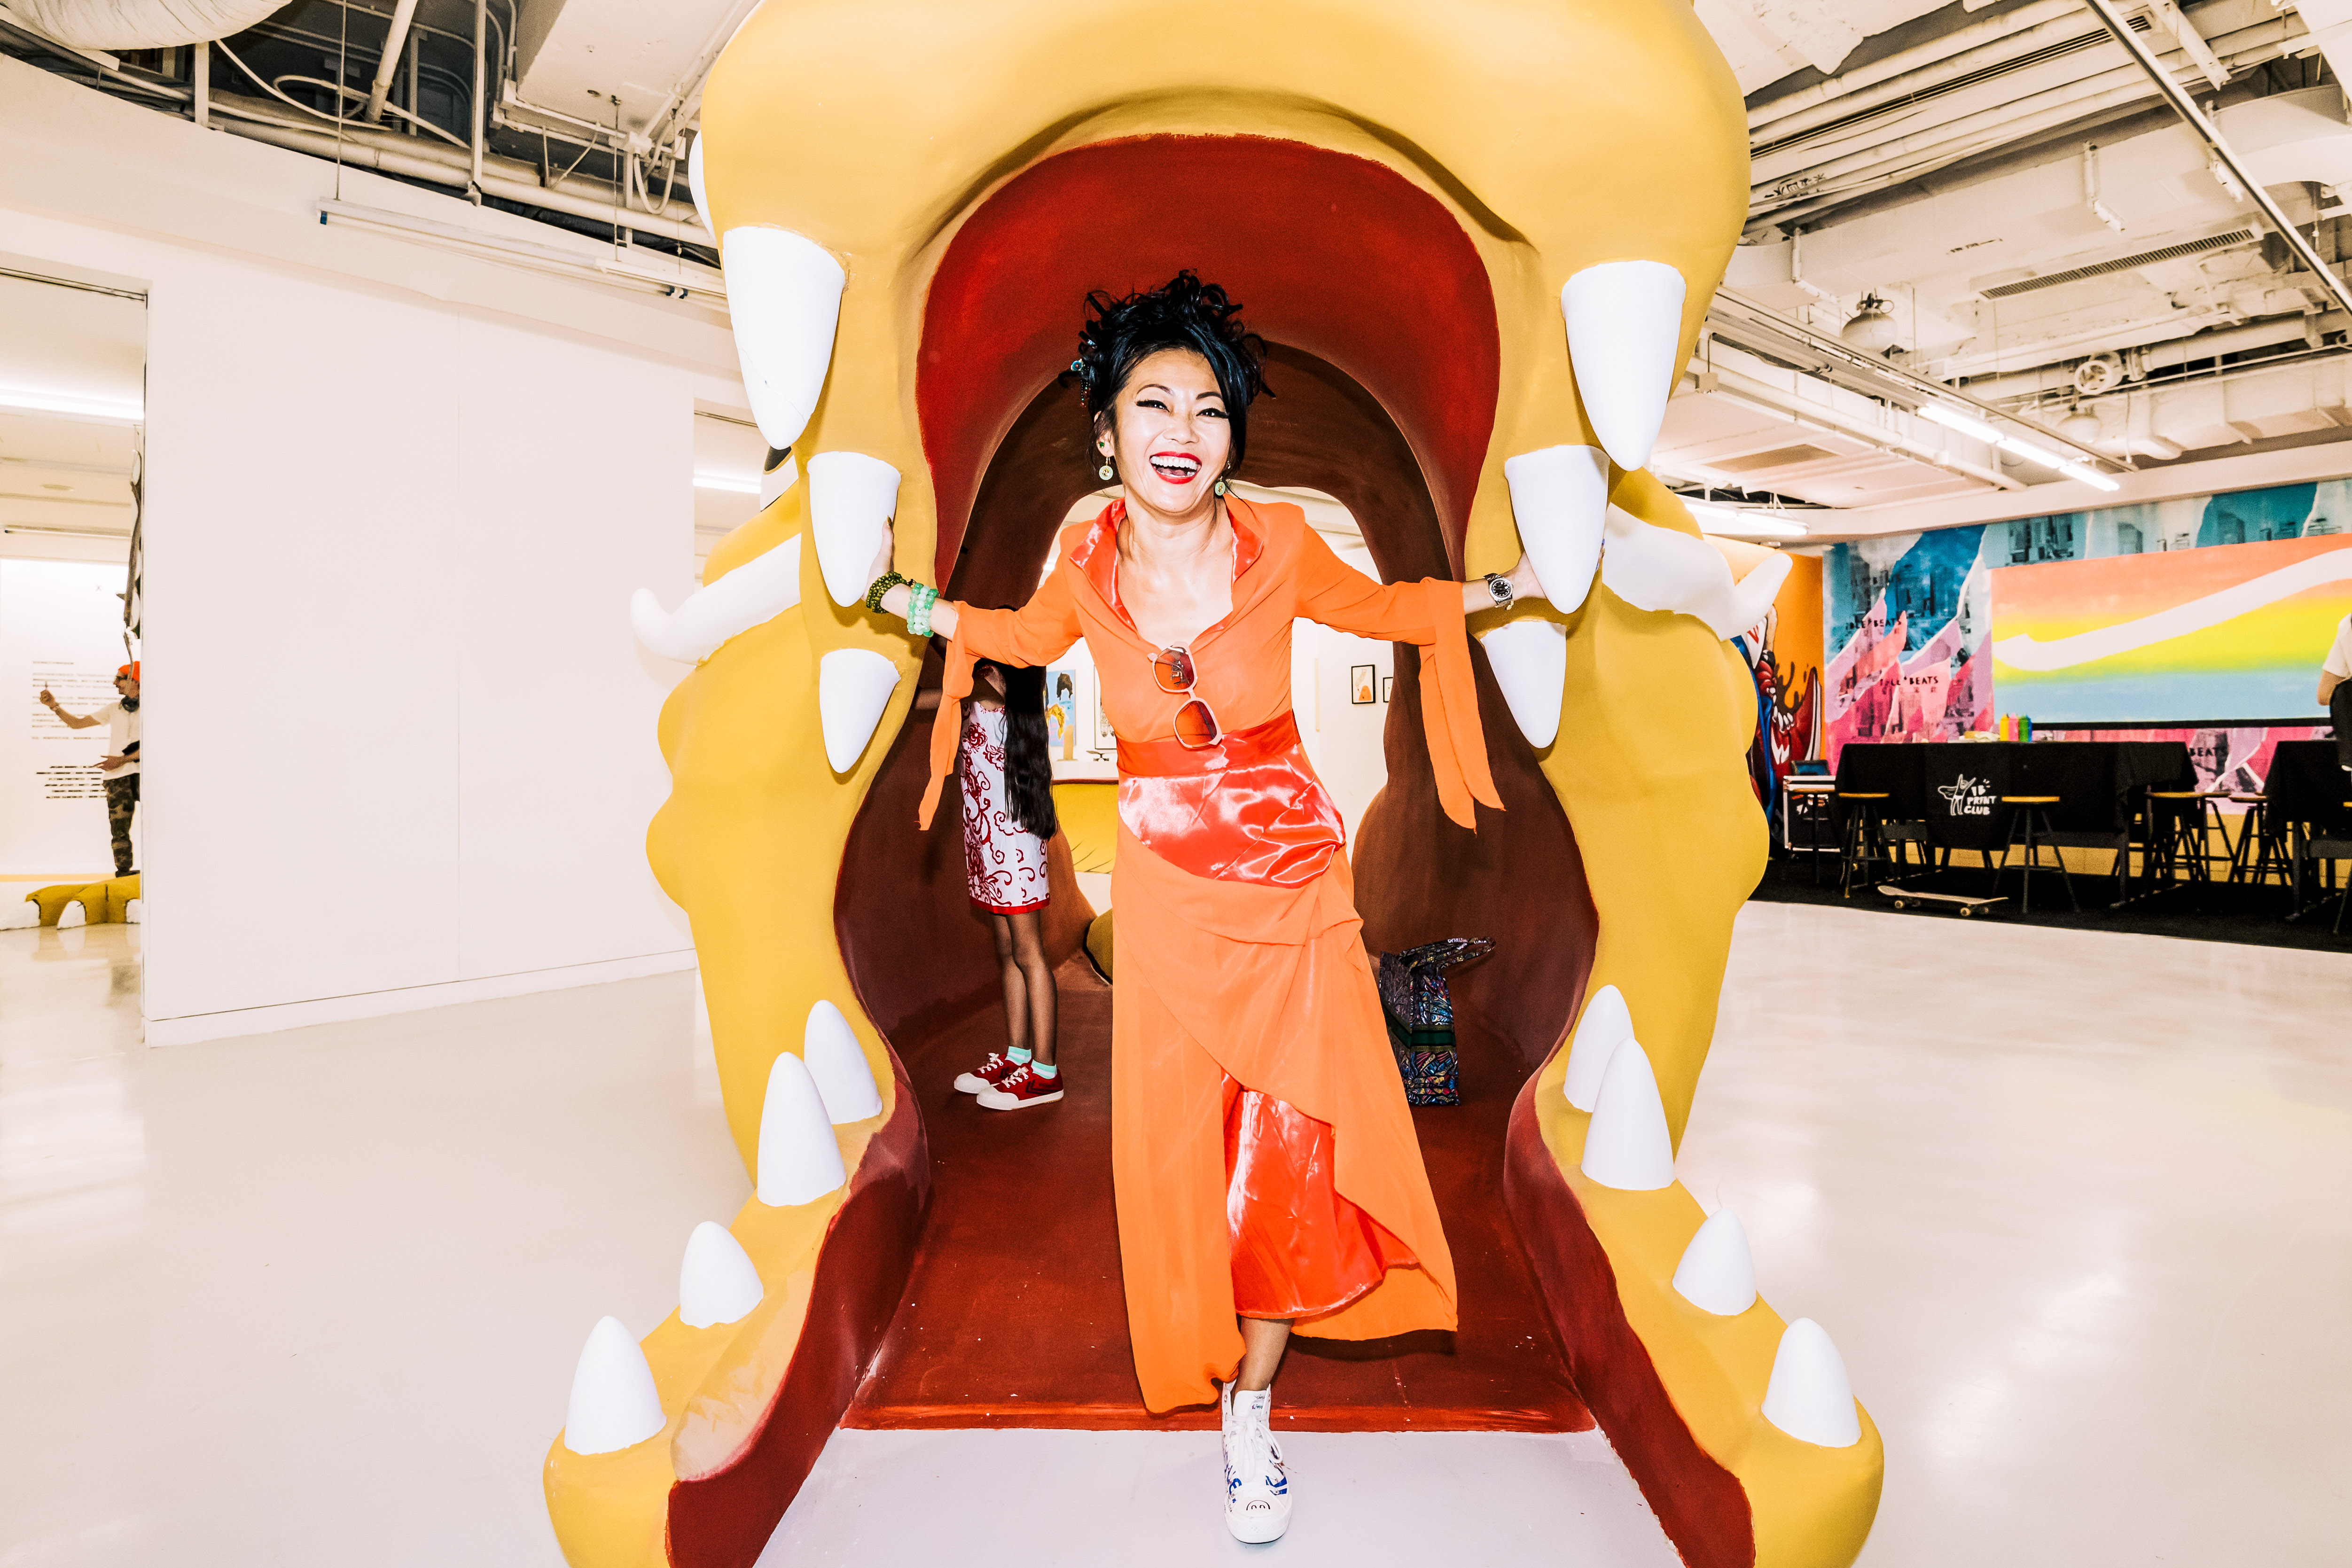 Vans taps Tmall Experience Center for exhibition_07192019